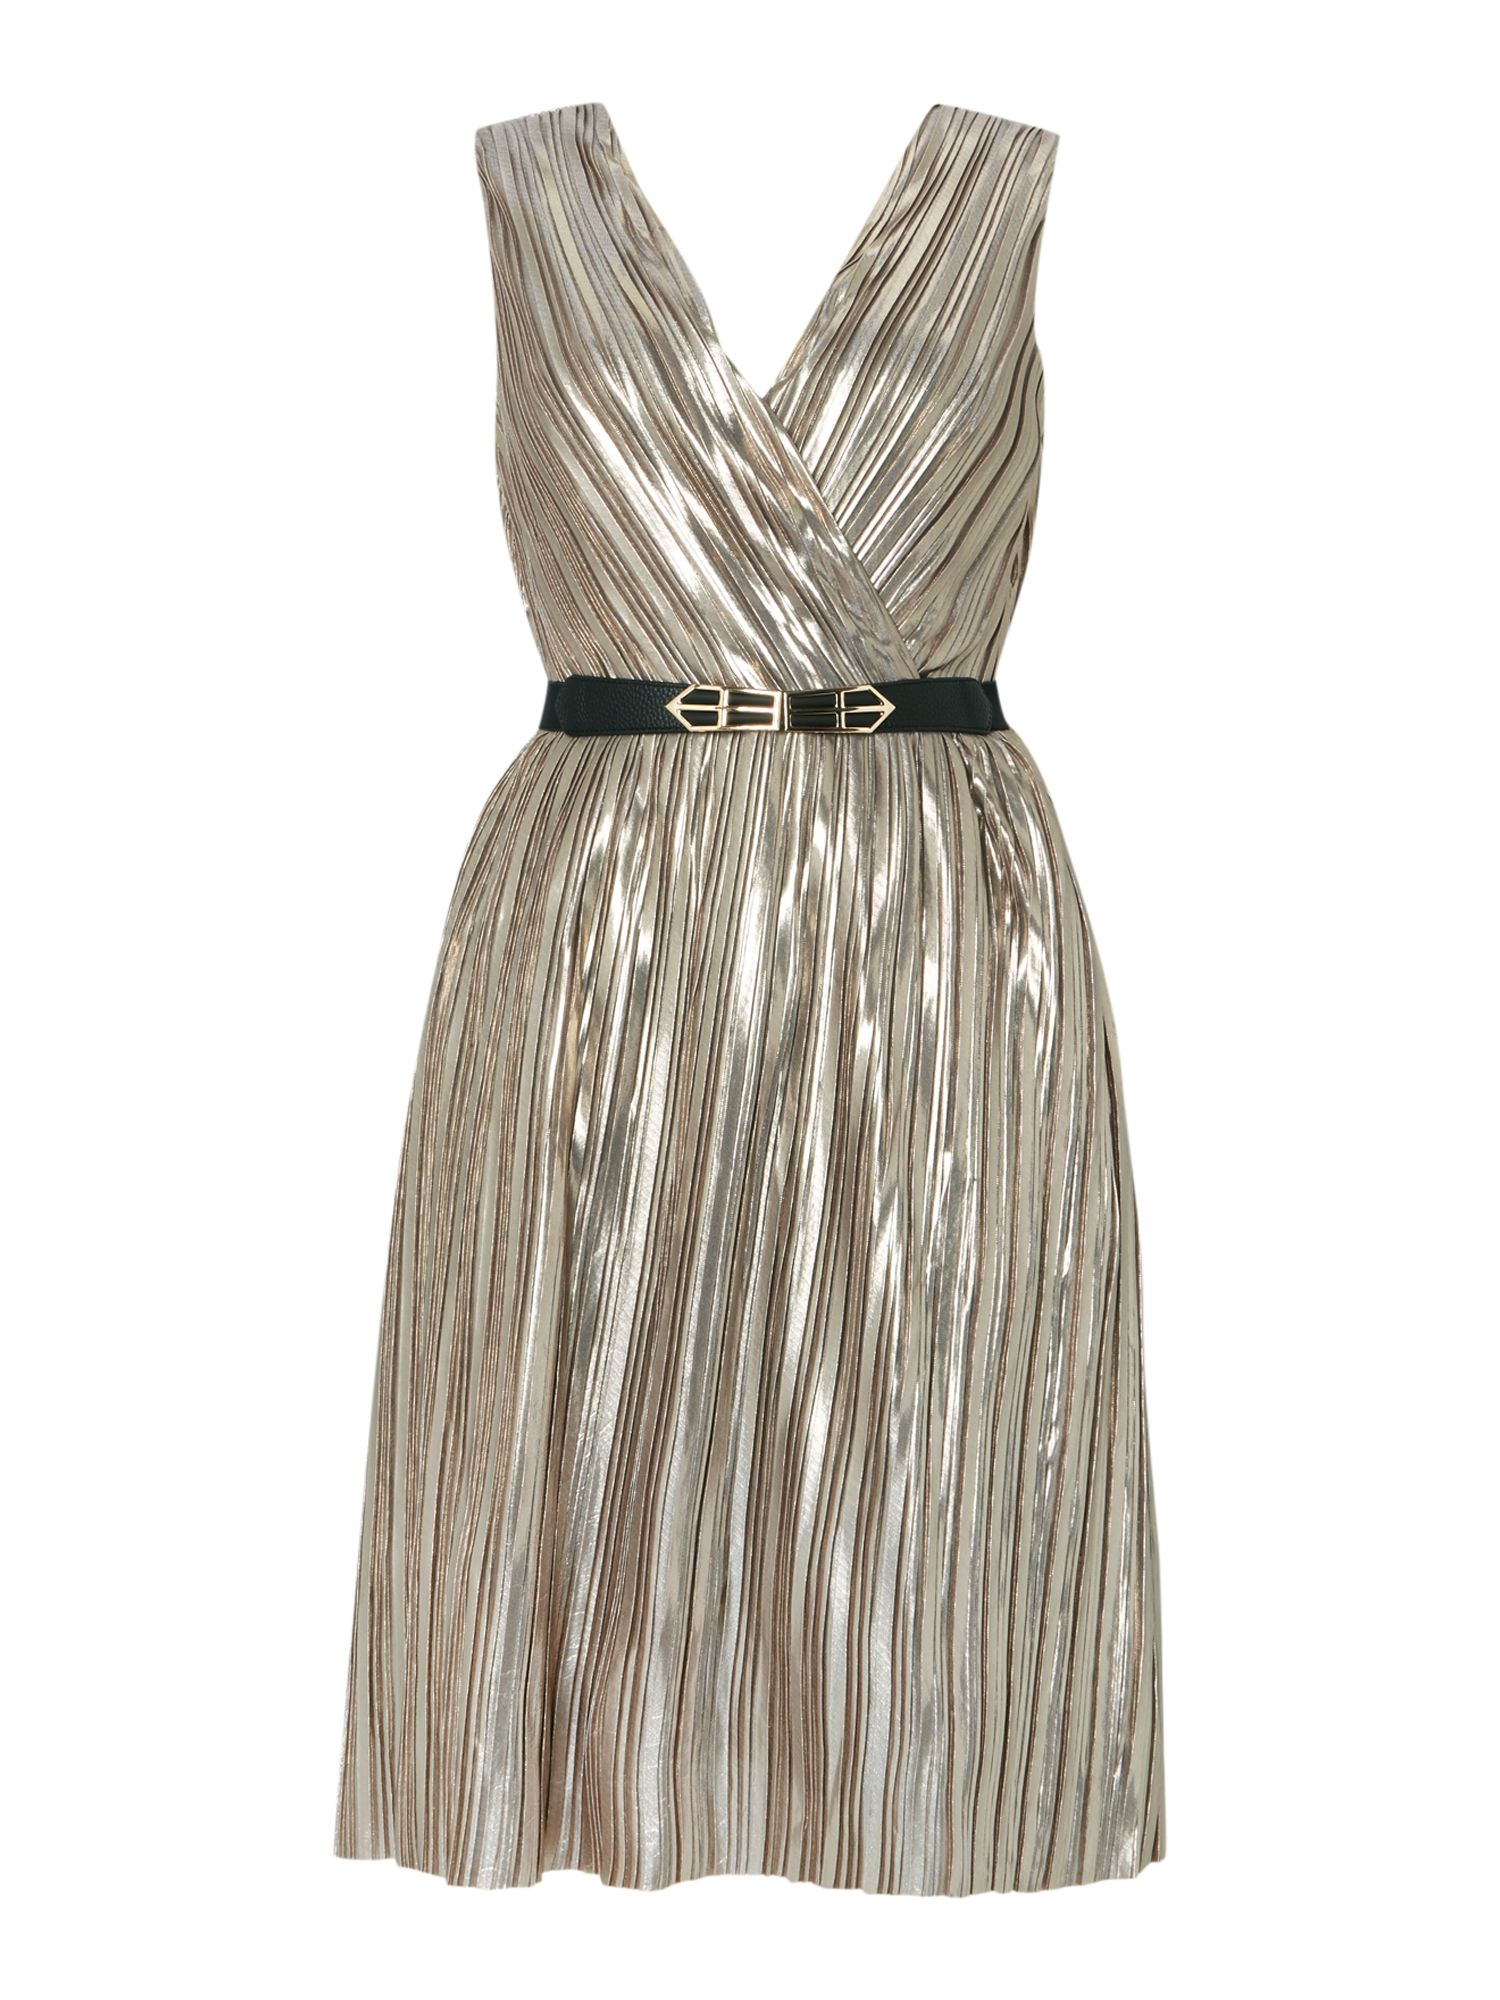 Little Mistress Sleeveless V Neck Belted Fit And Flare Dress, Silver Metallic